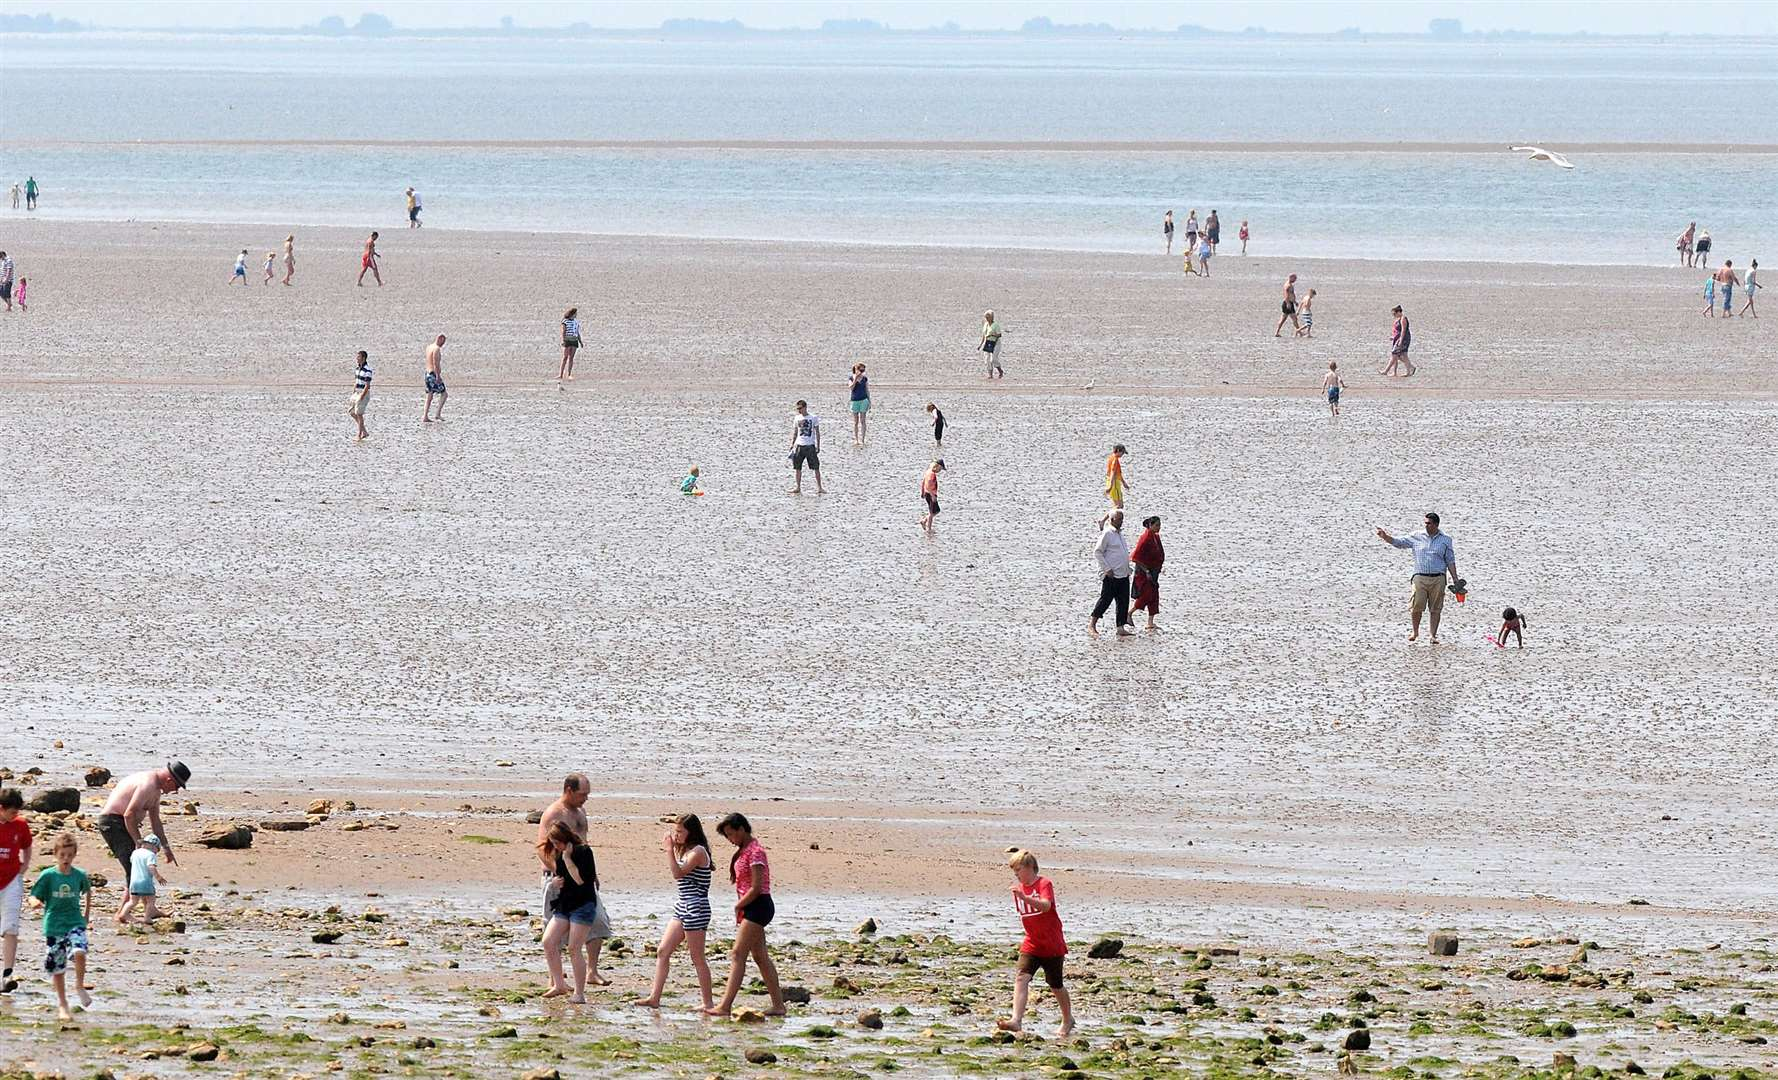 Hunstanton's beach is a popular destination when the sun is shining at this time of the year